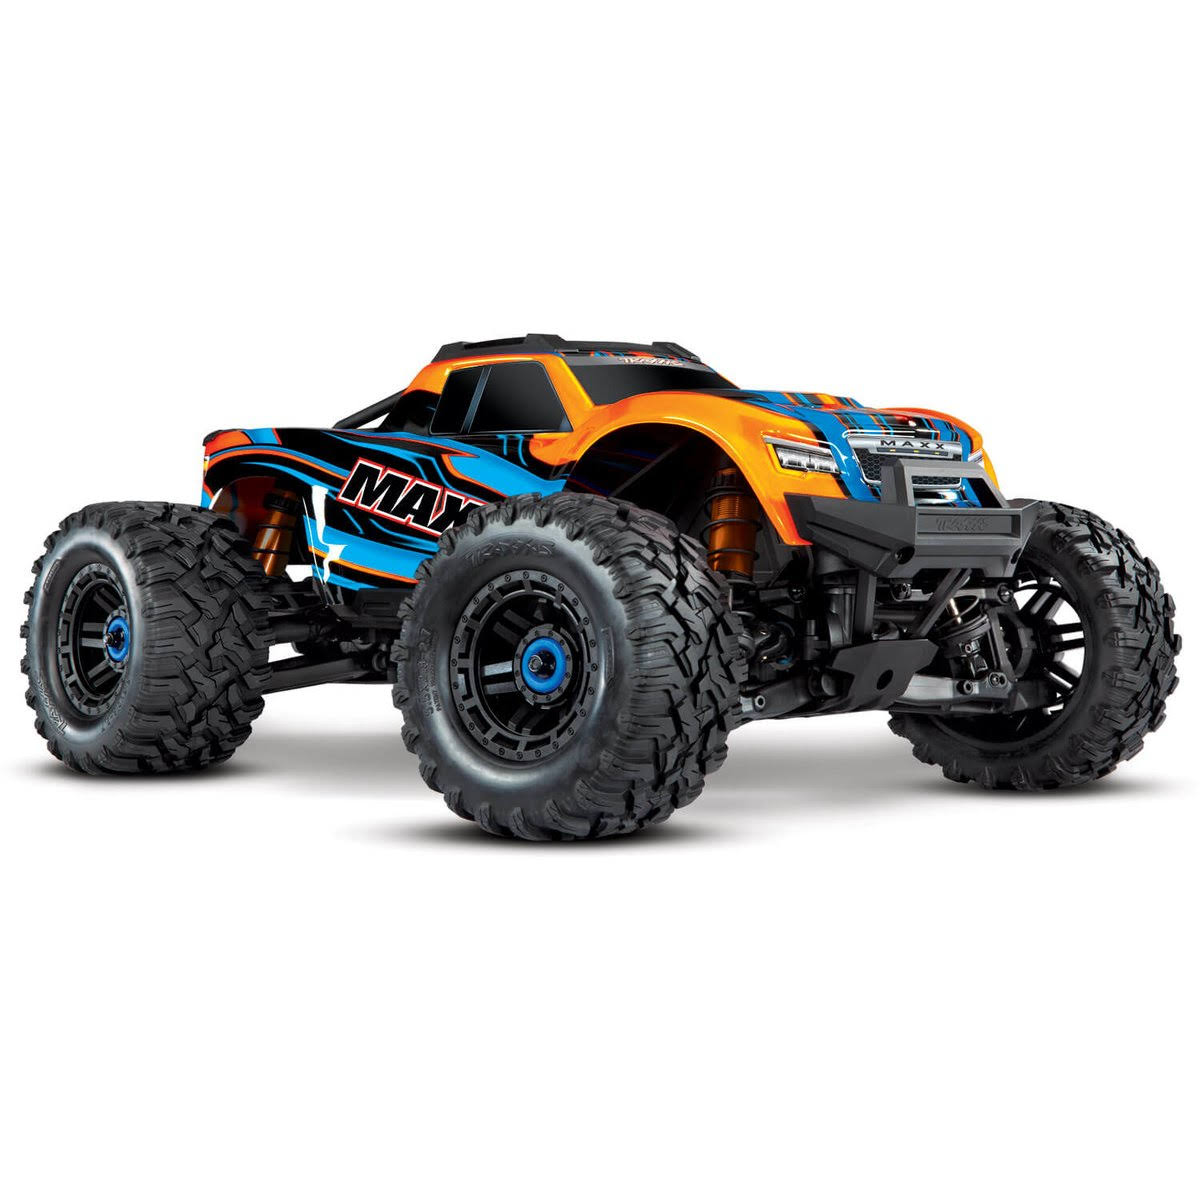 Traxxas 89076-4 - Maxx 1/10 4x4 Monster Truck RTR, Orange